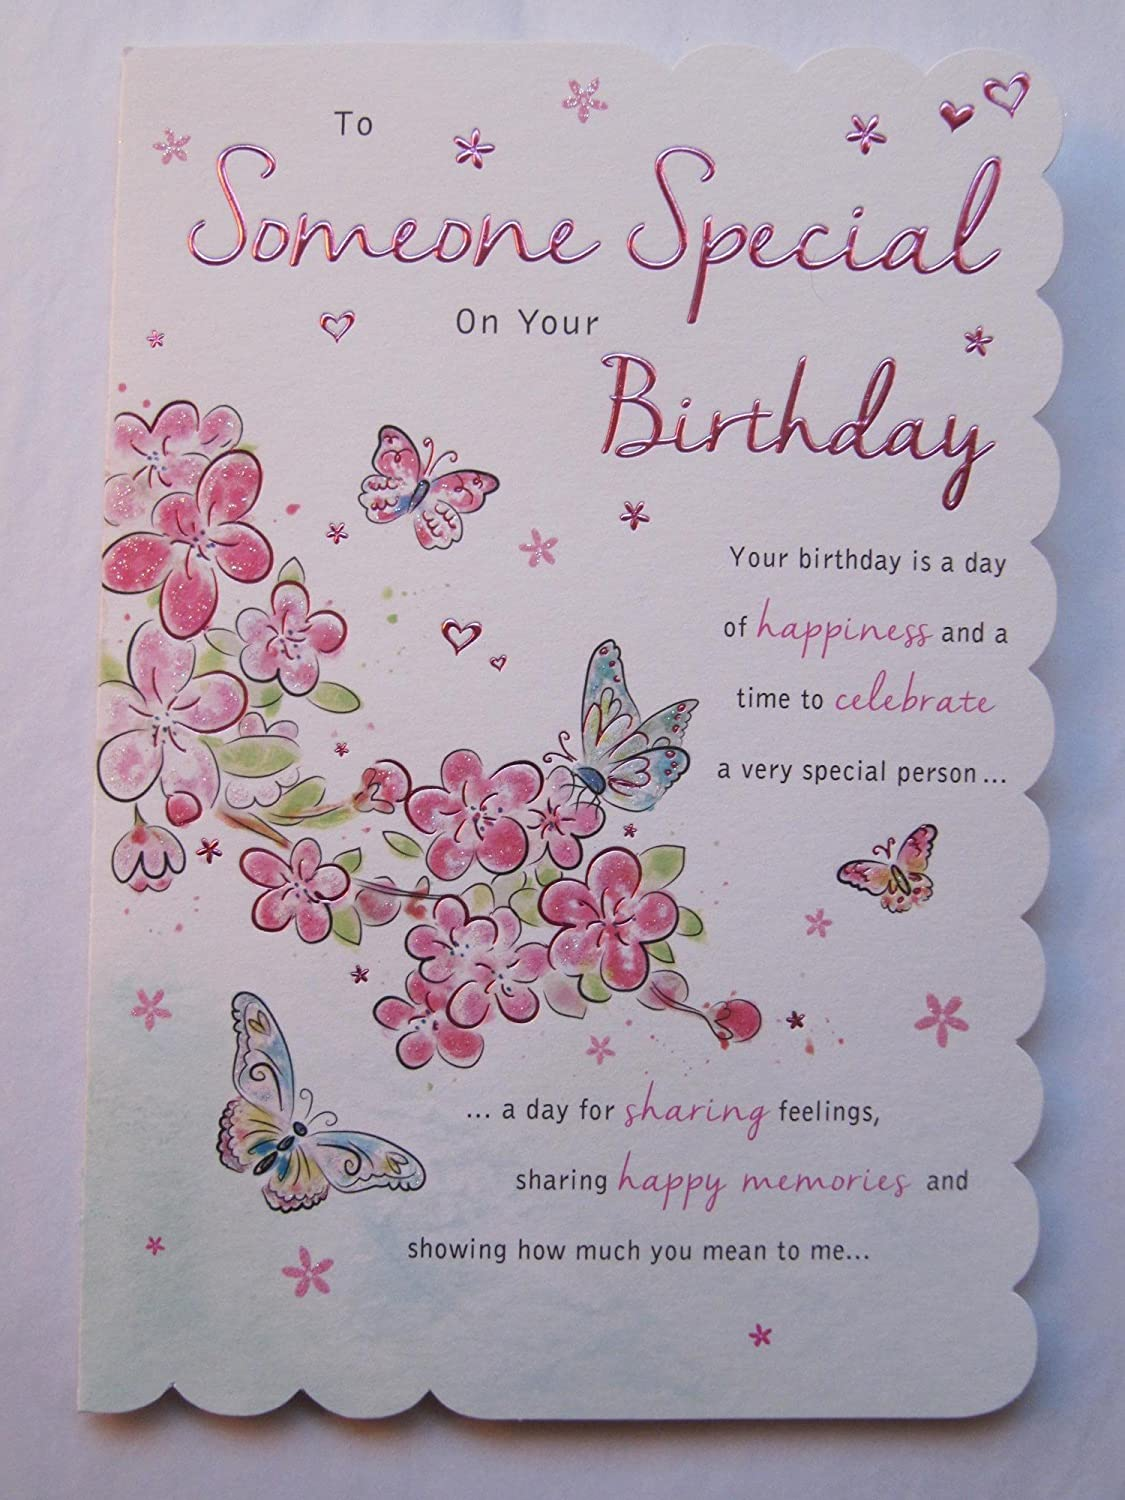 STUNNING TOP RANGE WONDERFUL WORDS 3VERSE SOMEONE SPECIAL BIRTHDAY GREETING  CARD